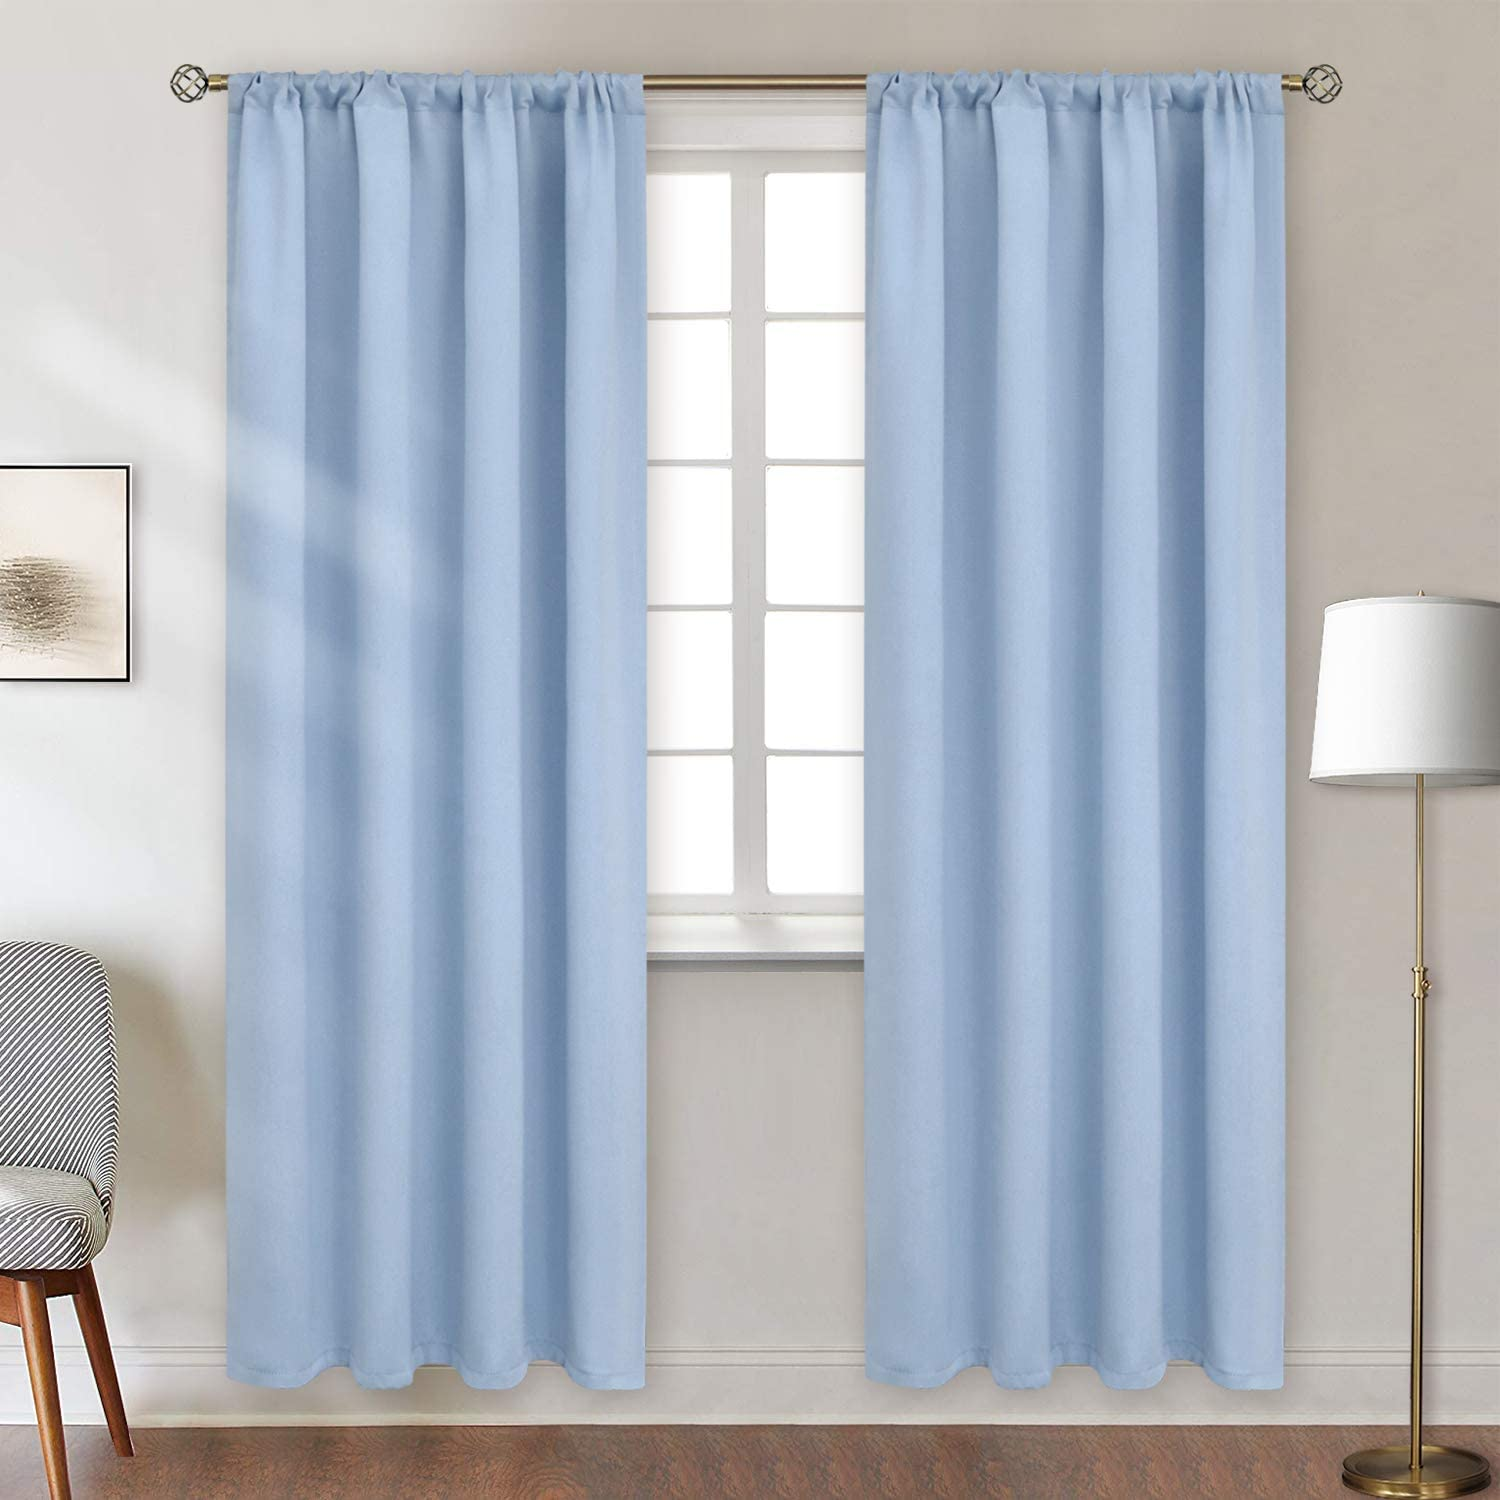 BGment Rod Pocket Blackout Curtains for Bedroom - Thermal Insulated Room Darkening Curtain for Living Room, 52 x 84 Inch, 2 Panels, Spa Blue